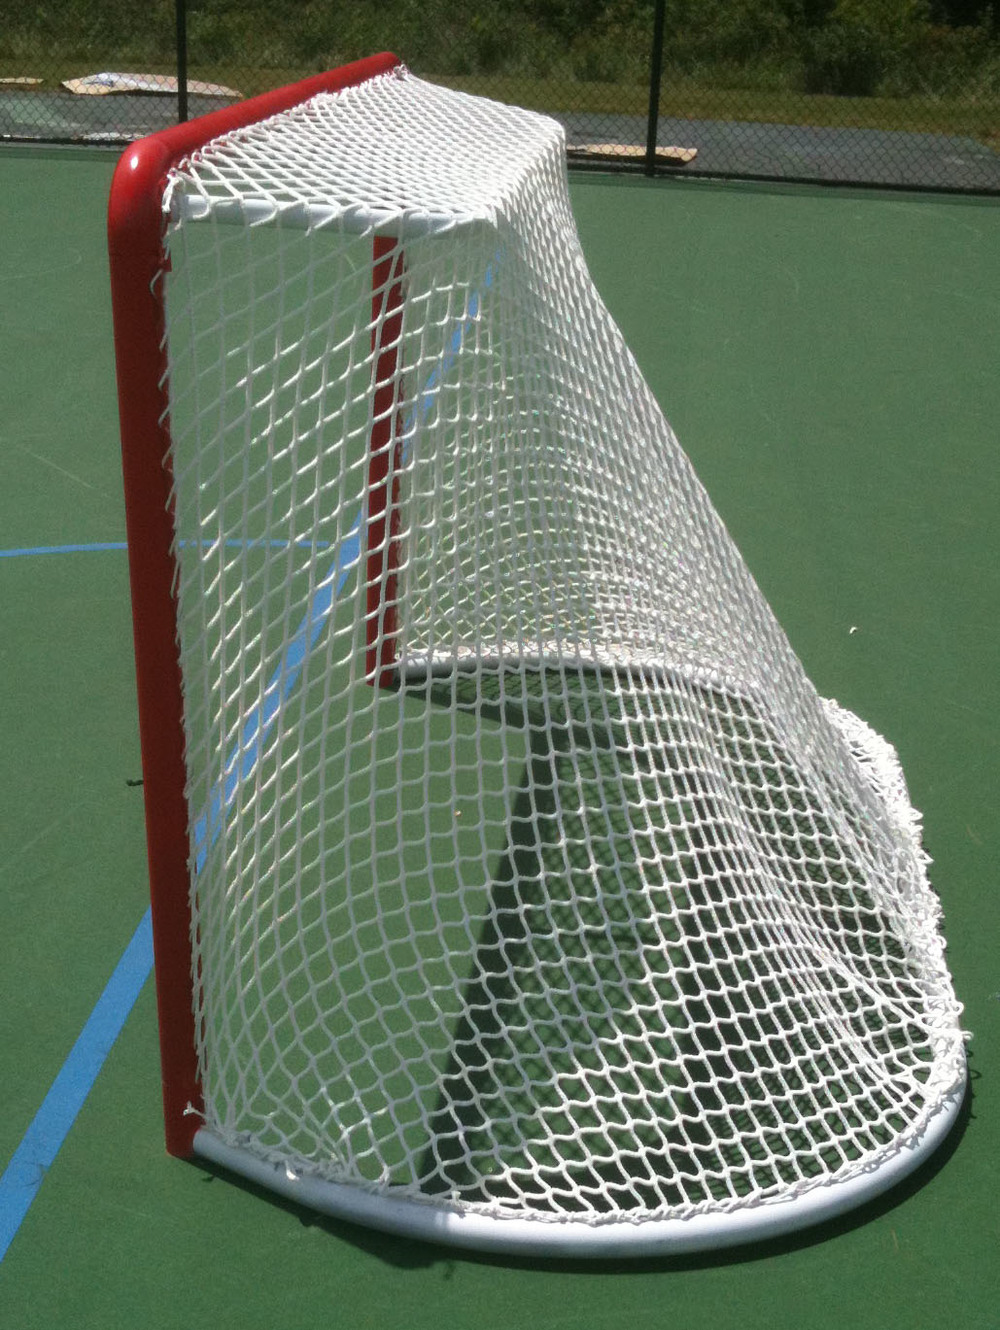 hockey goal refurbished 4.jpg